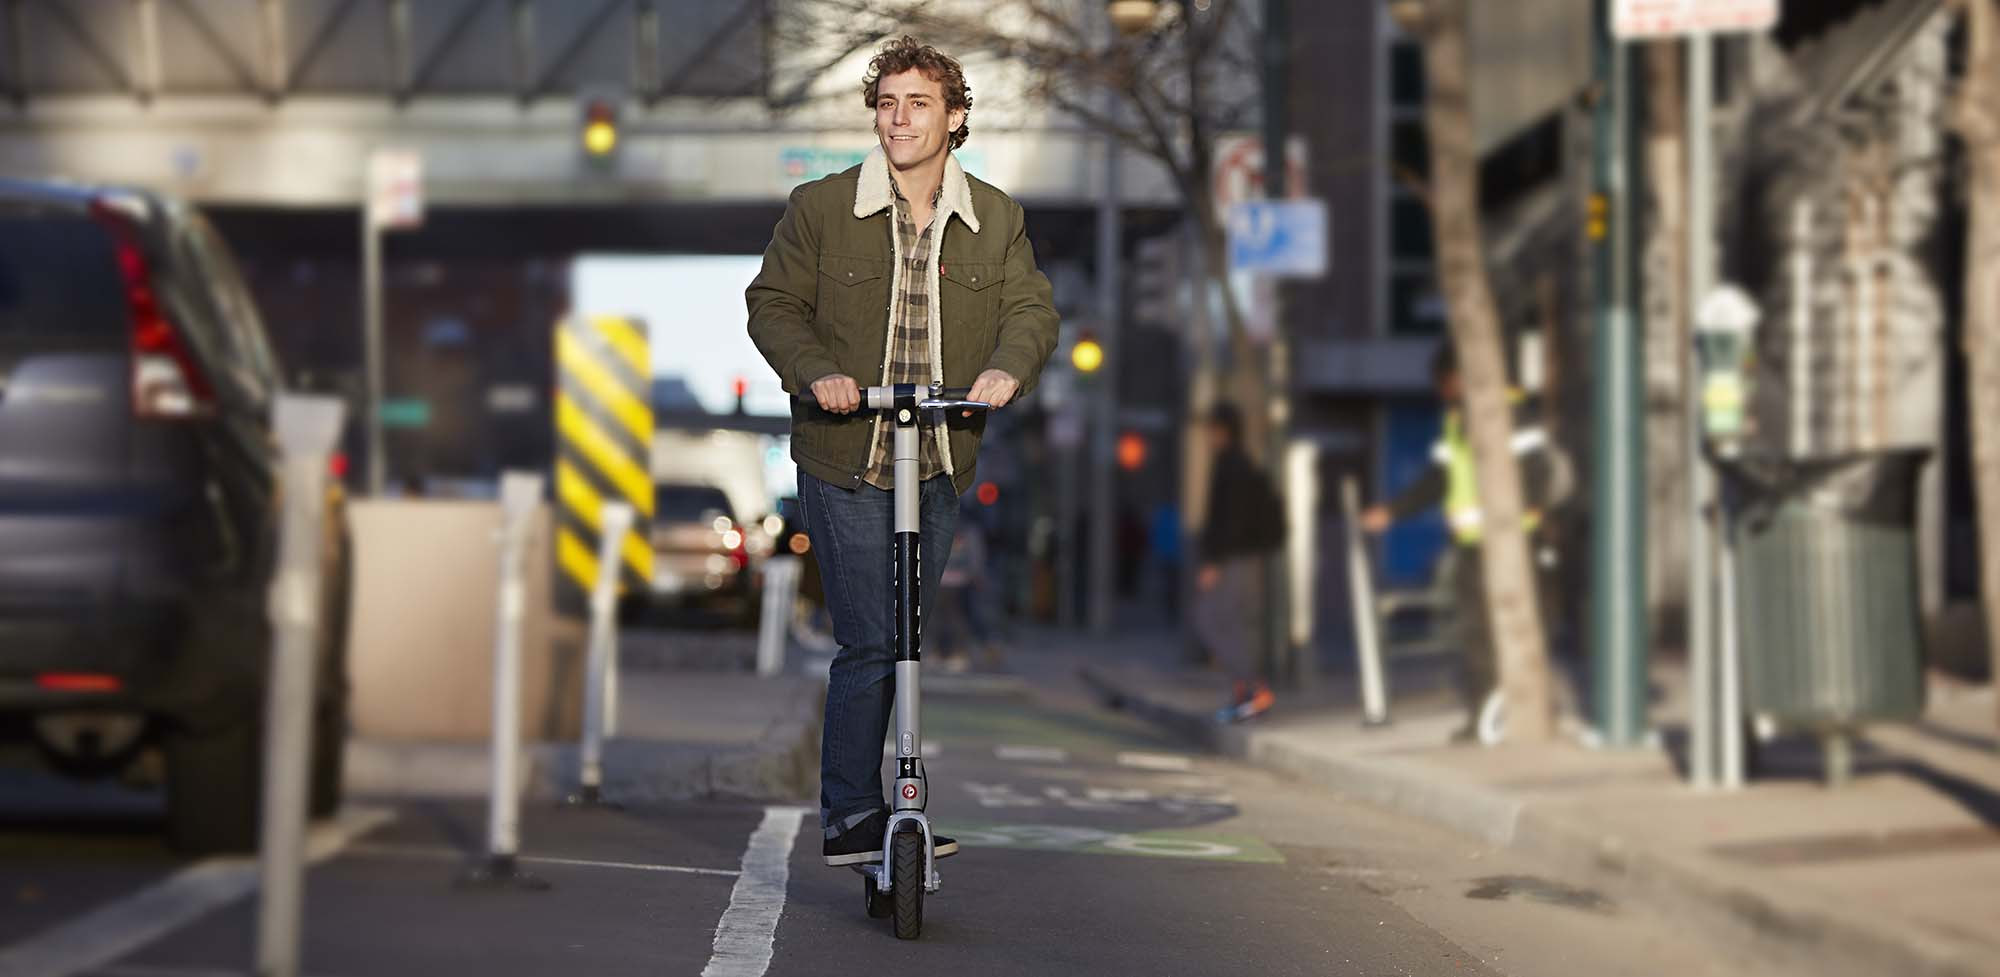 All New E-Scooters By GOTRAX